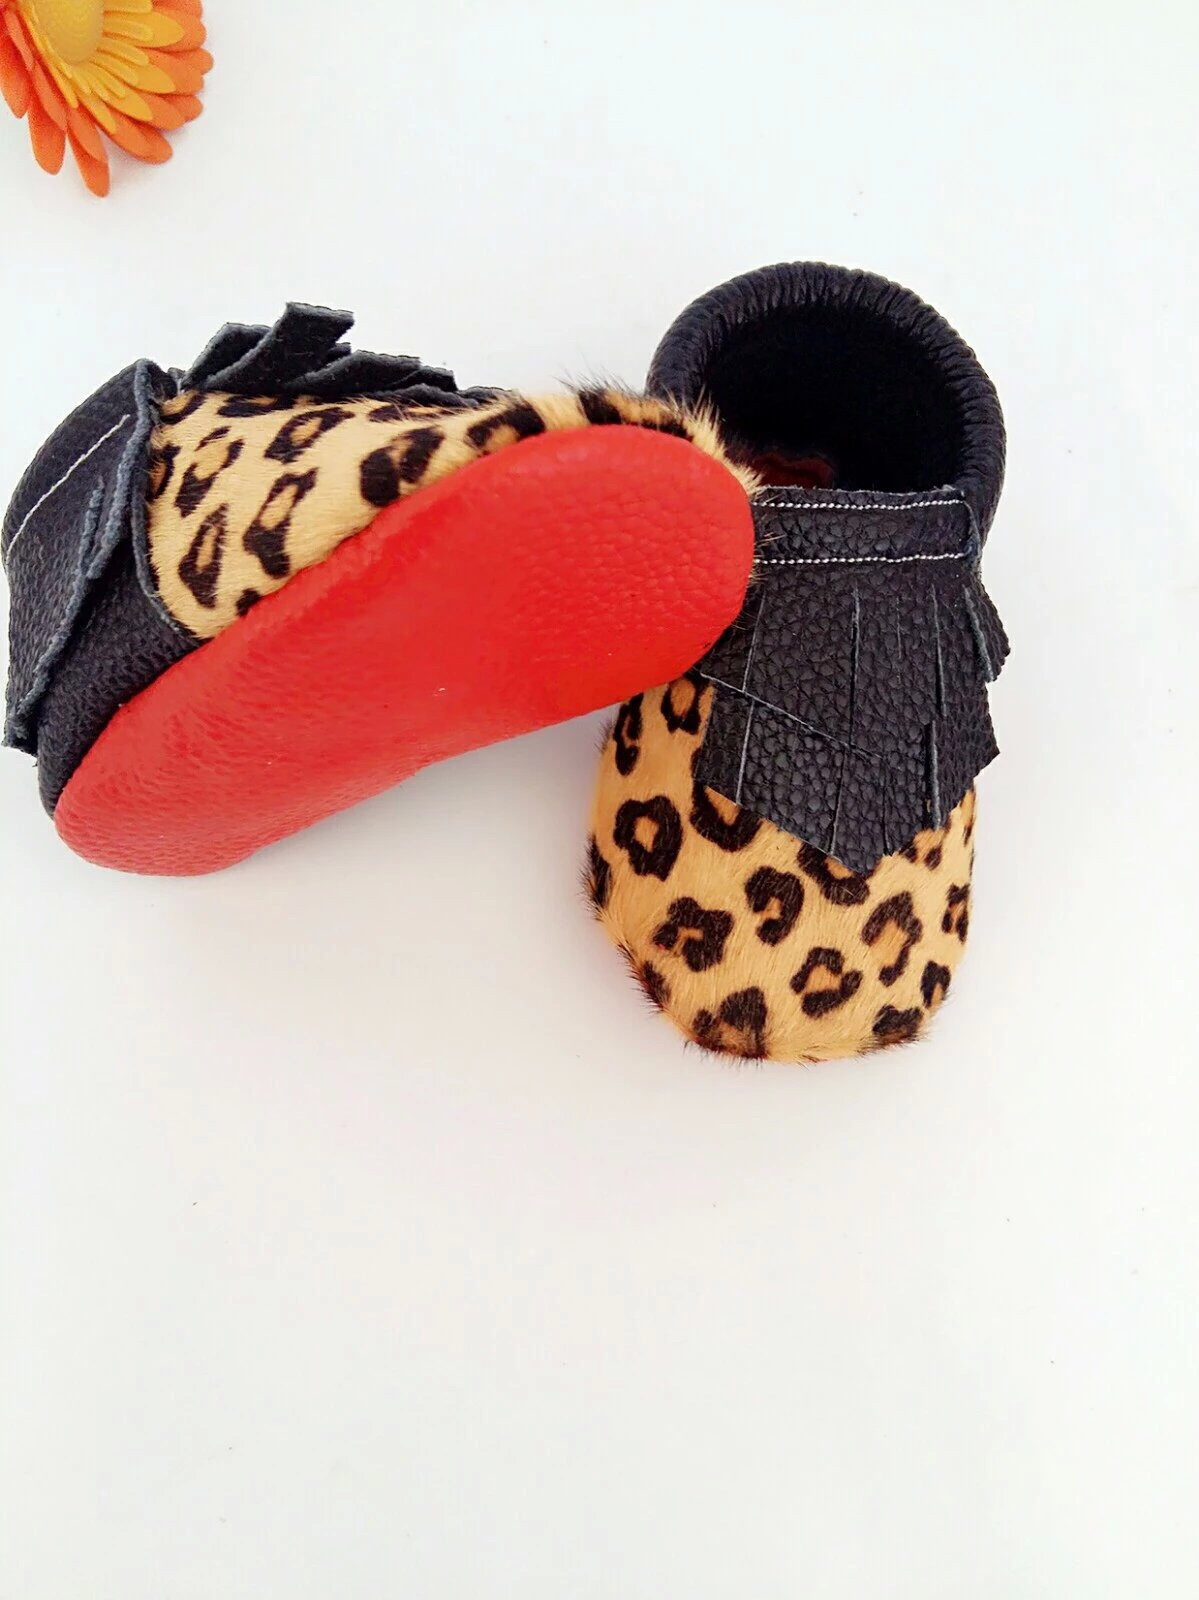 8794f755f22e Leopard print red sole baby moccasins handmade double tassel ...